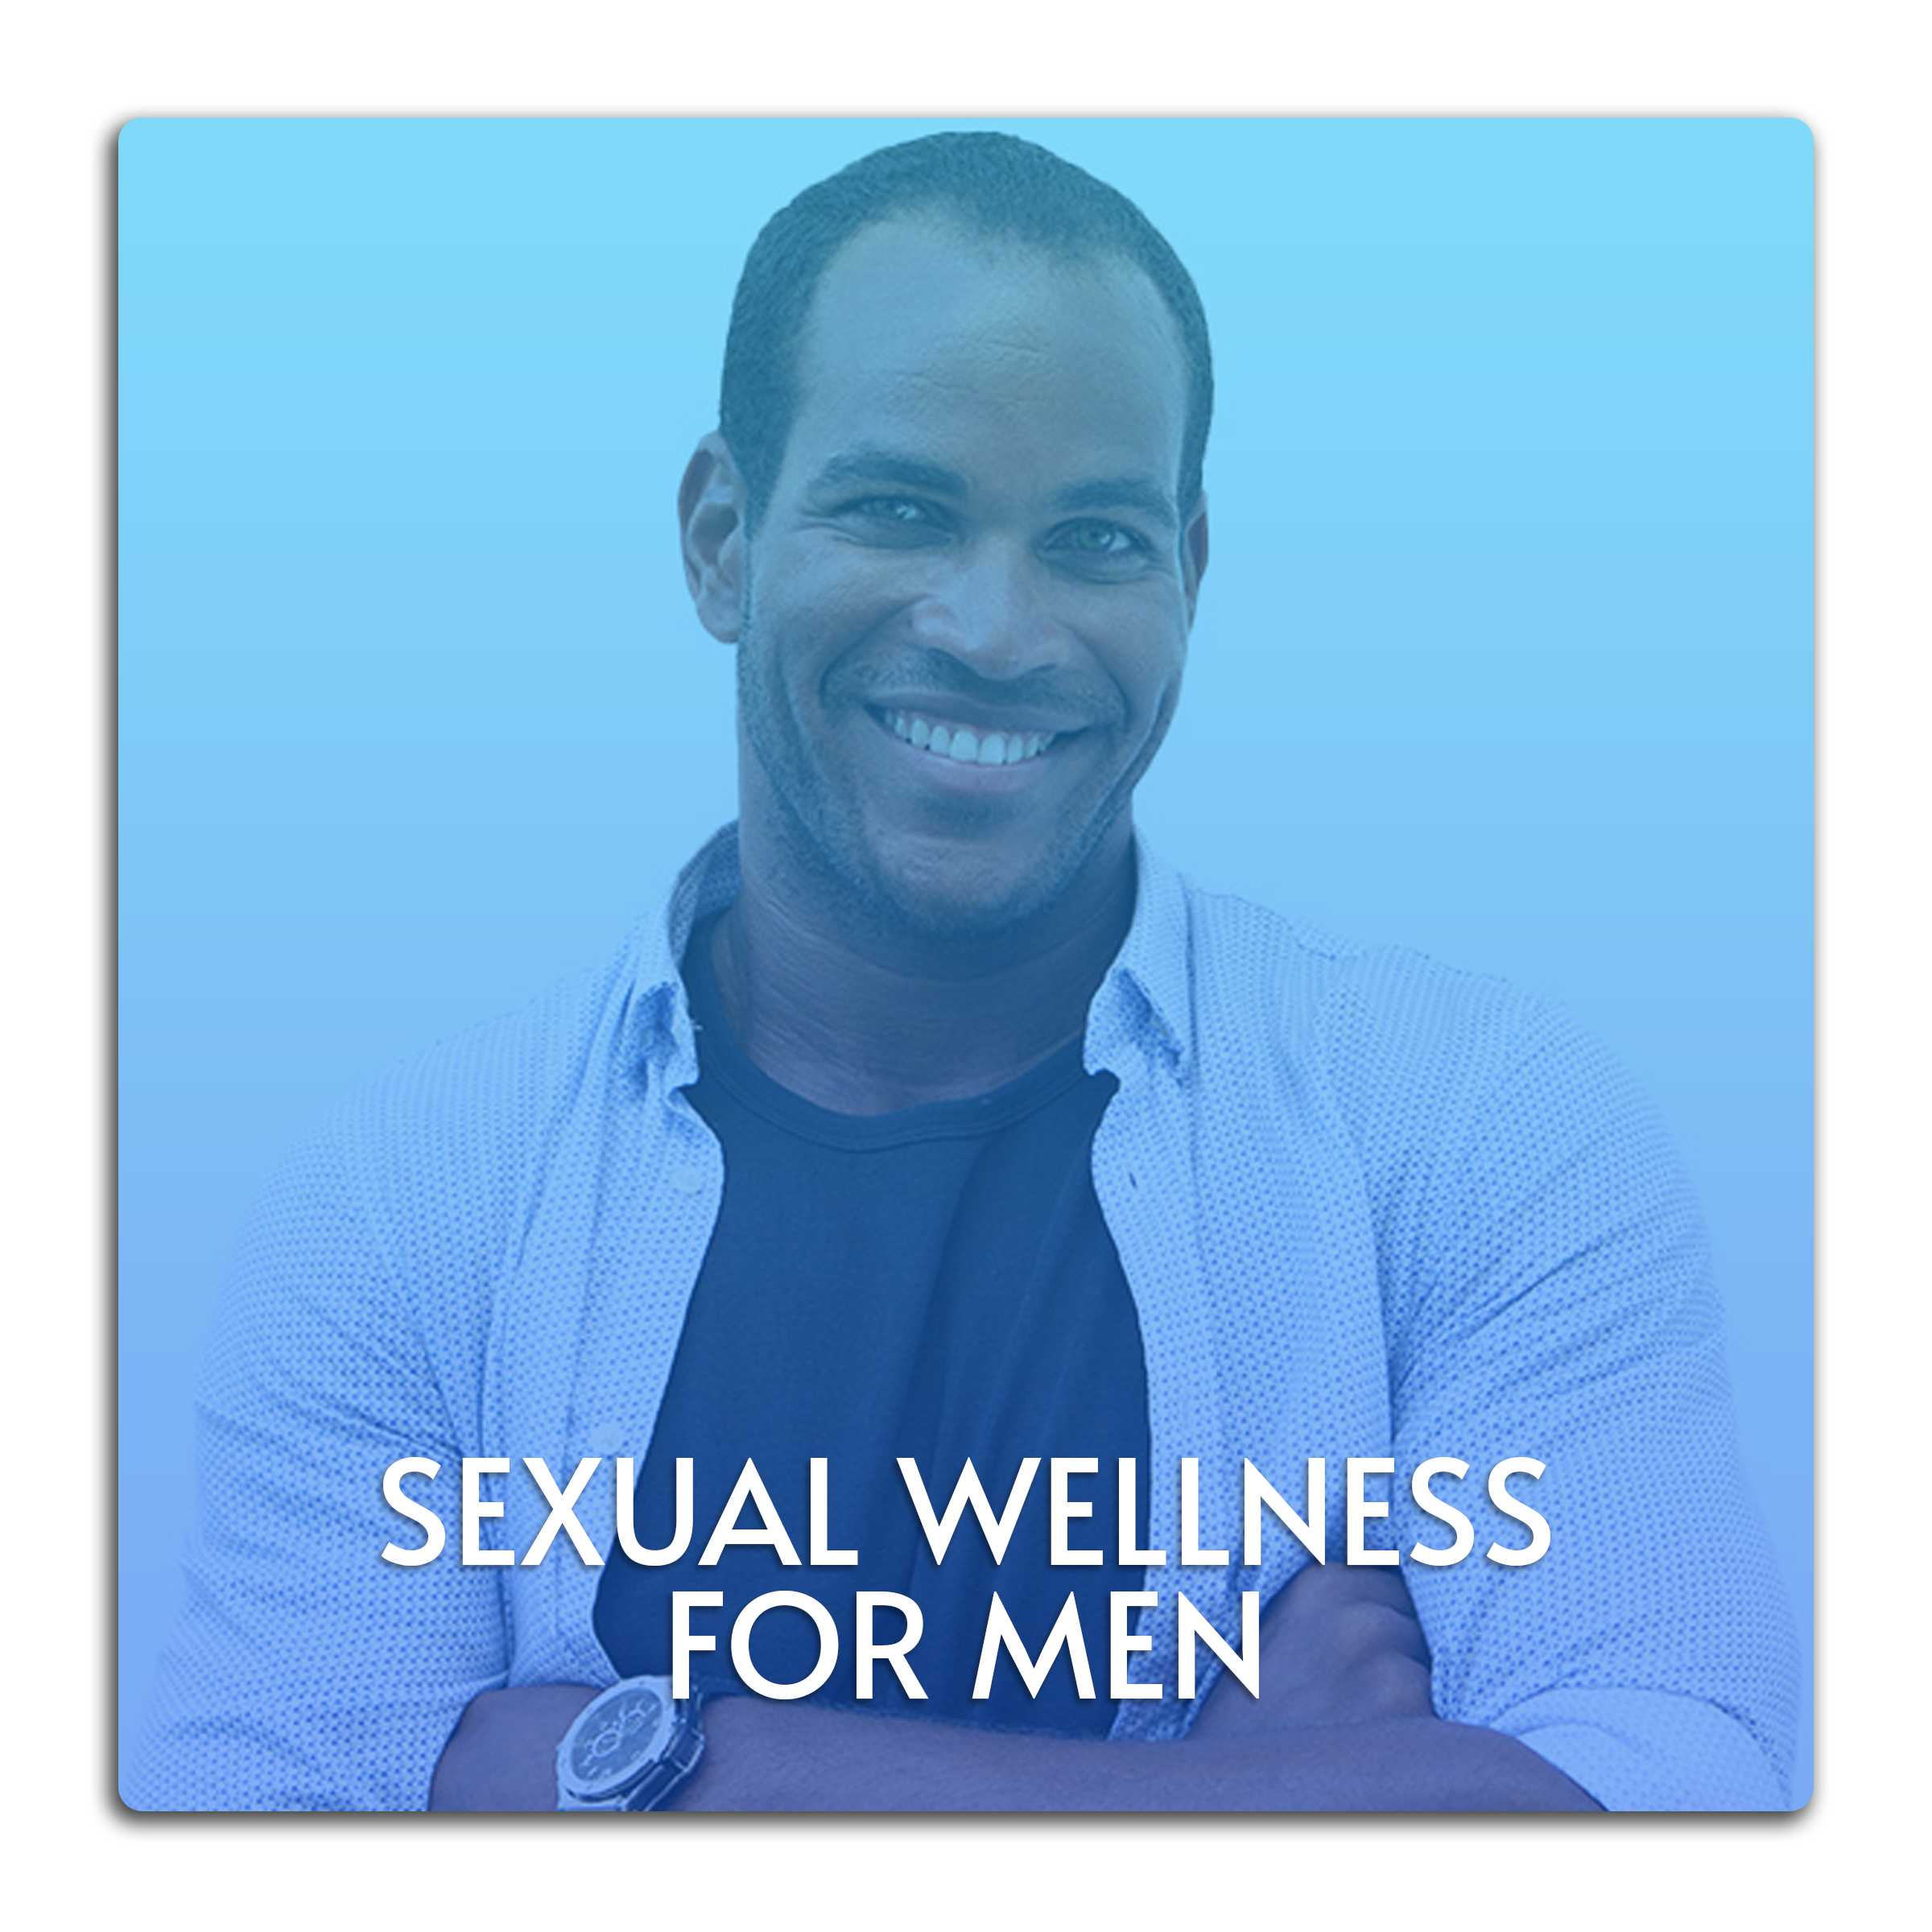 This image is a button linked to the Sexual Wellness for Men page